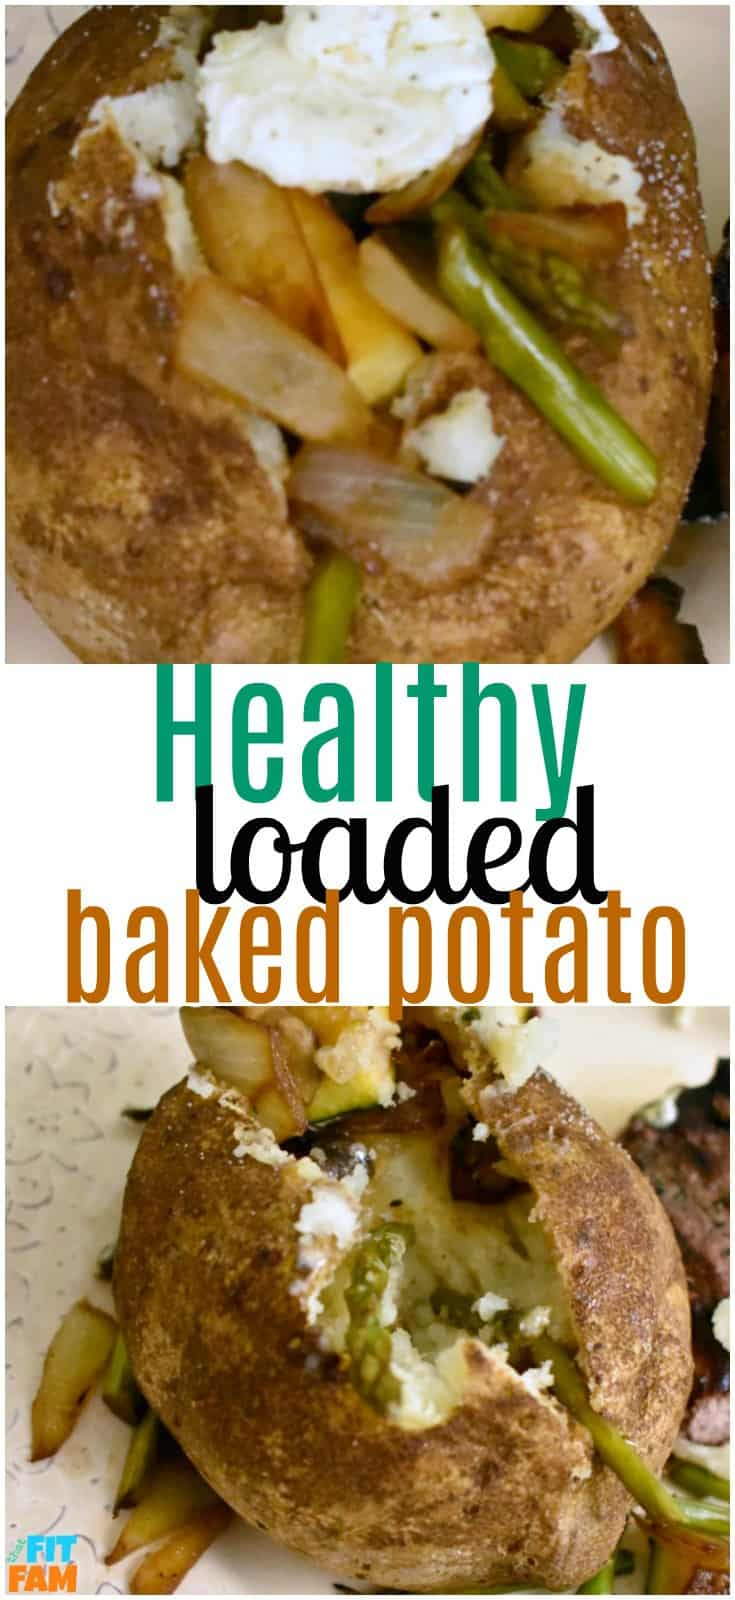 Healthy loaded baked potato is so nutrient rich and delicious! You'd never guess it was low carb. Perfect side dish for dinner! Family friendly meal!